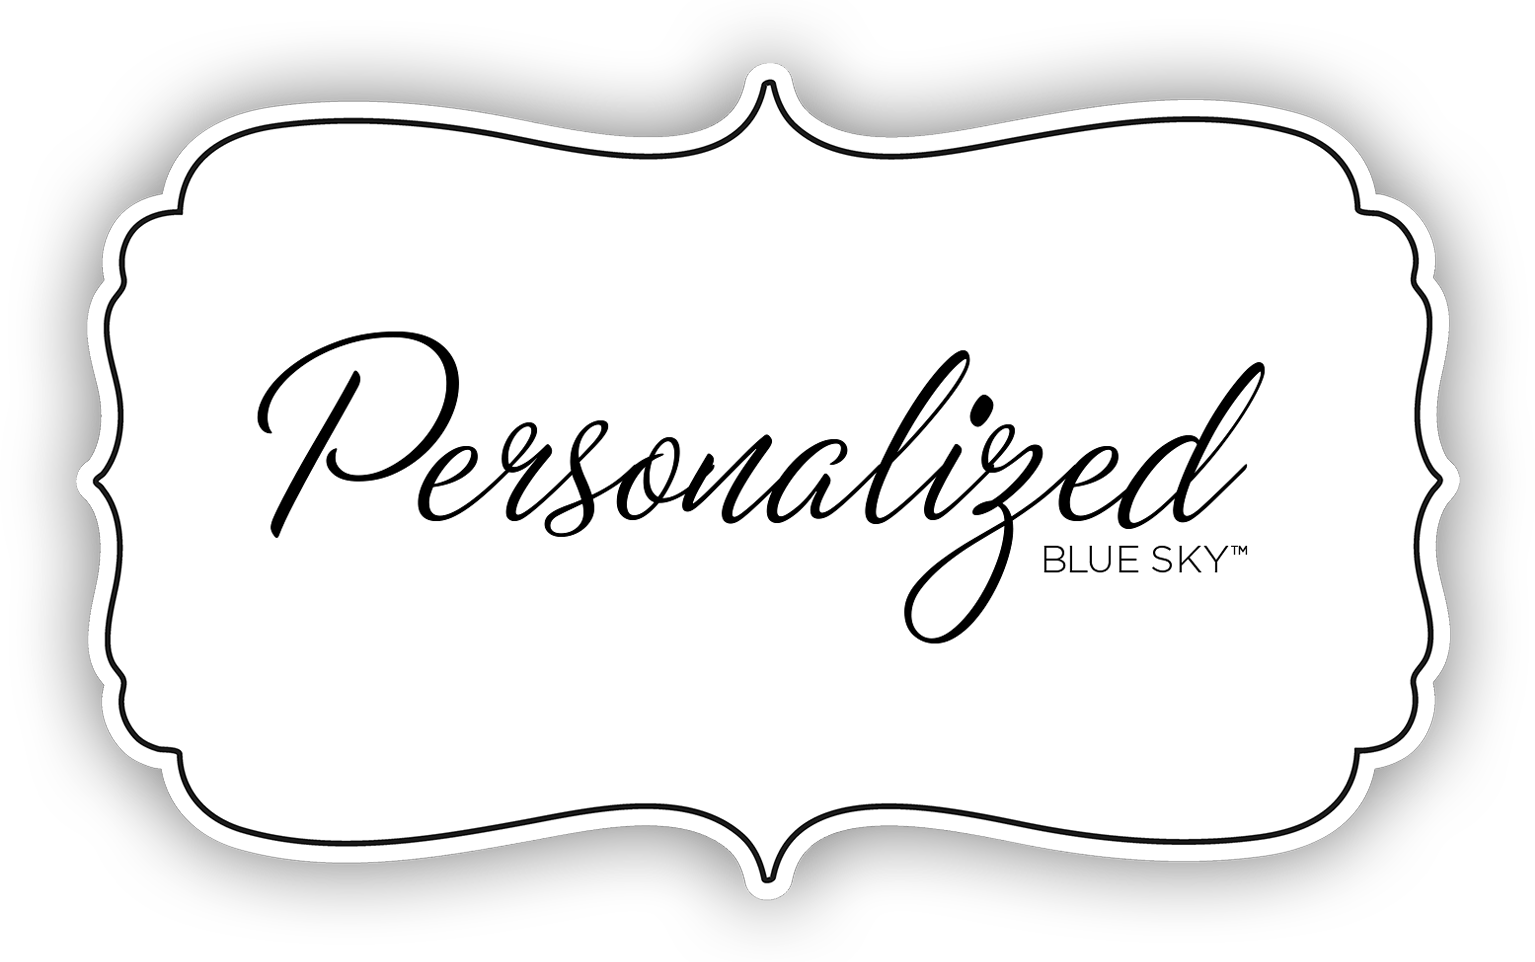 personalized blue sky